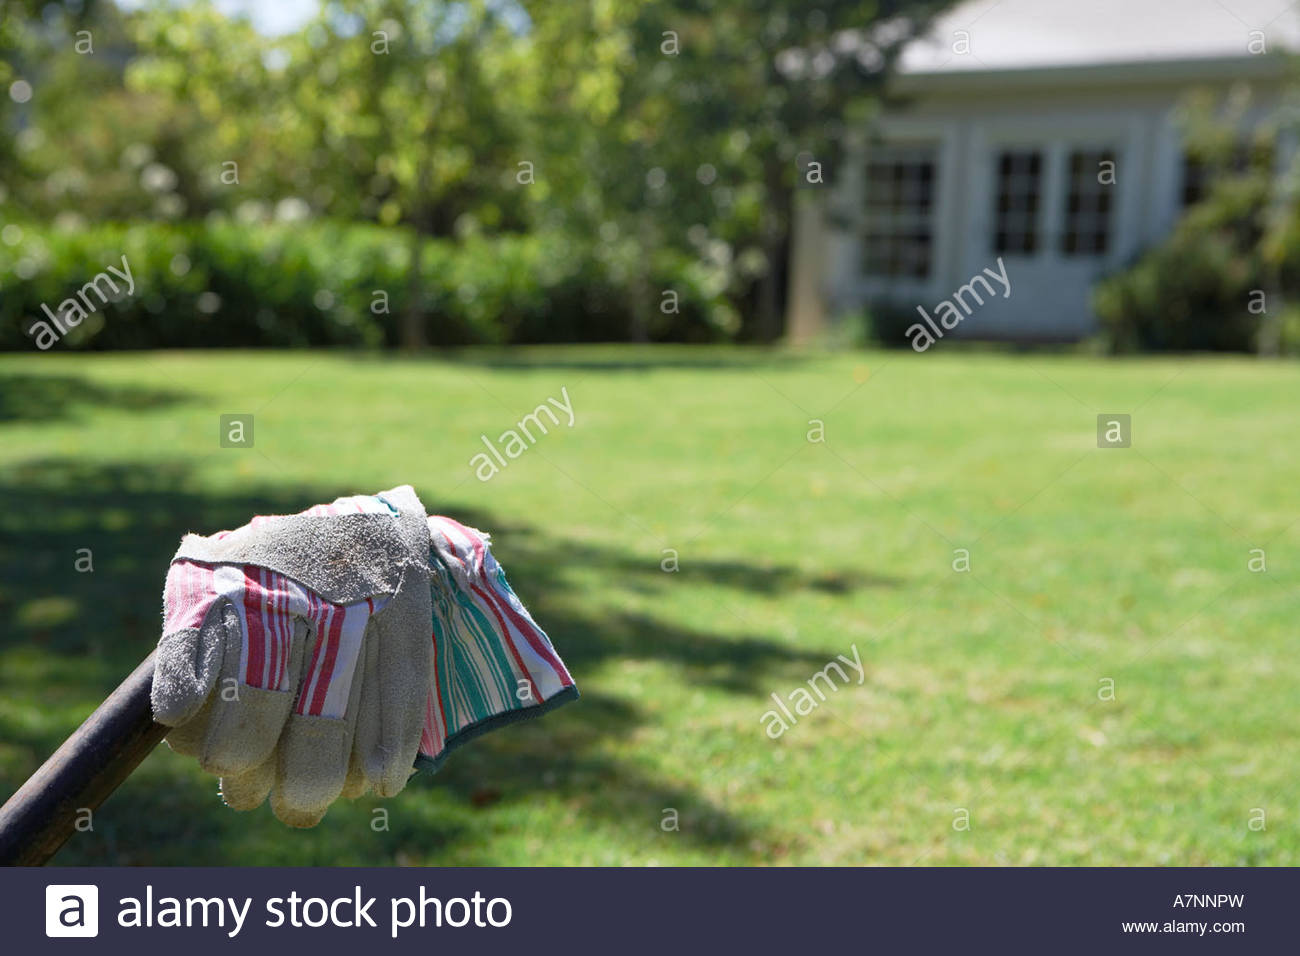 Pair of gardening gloves garden lawn in background focus on foreground - Stock Image